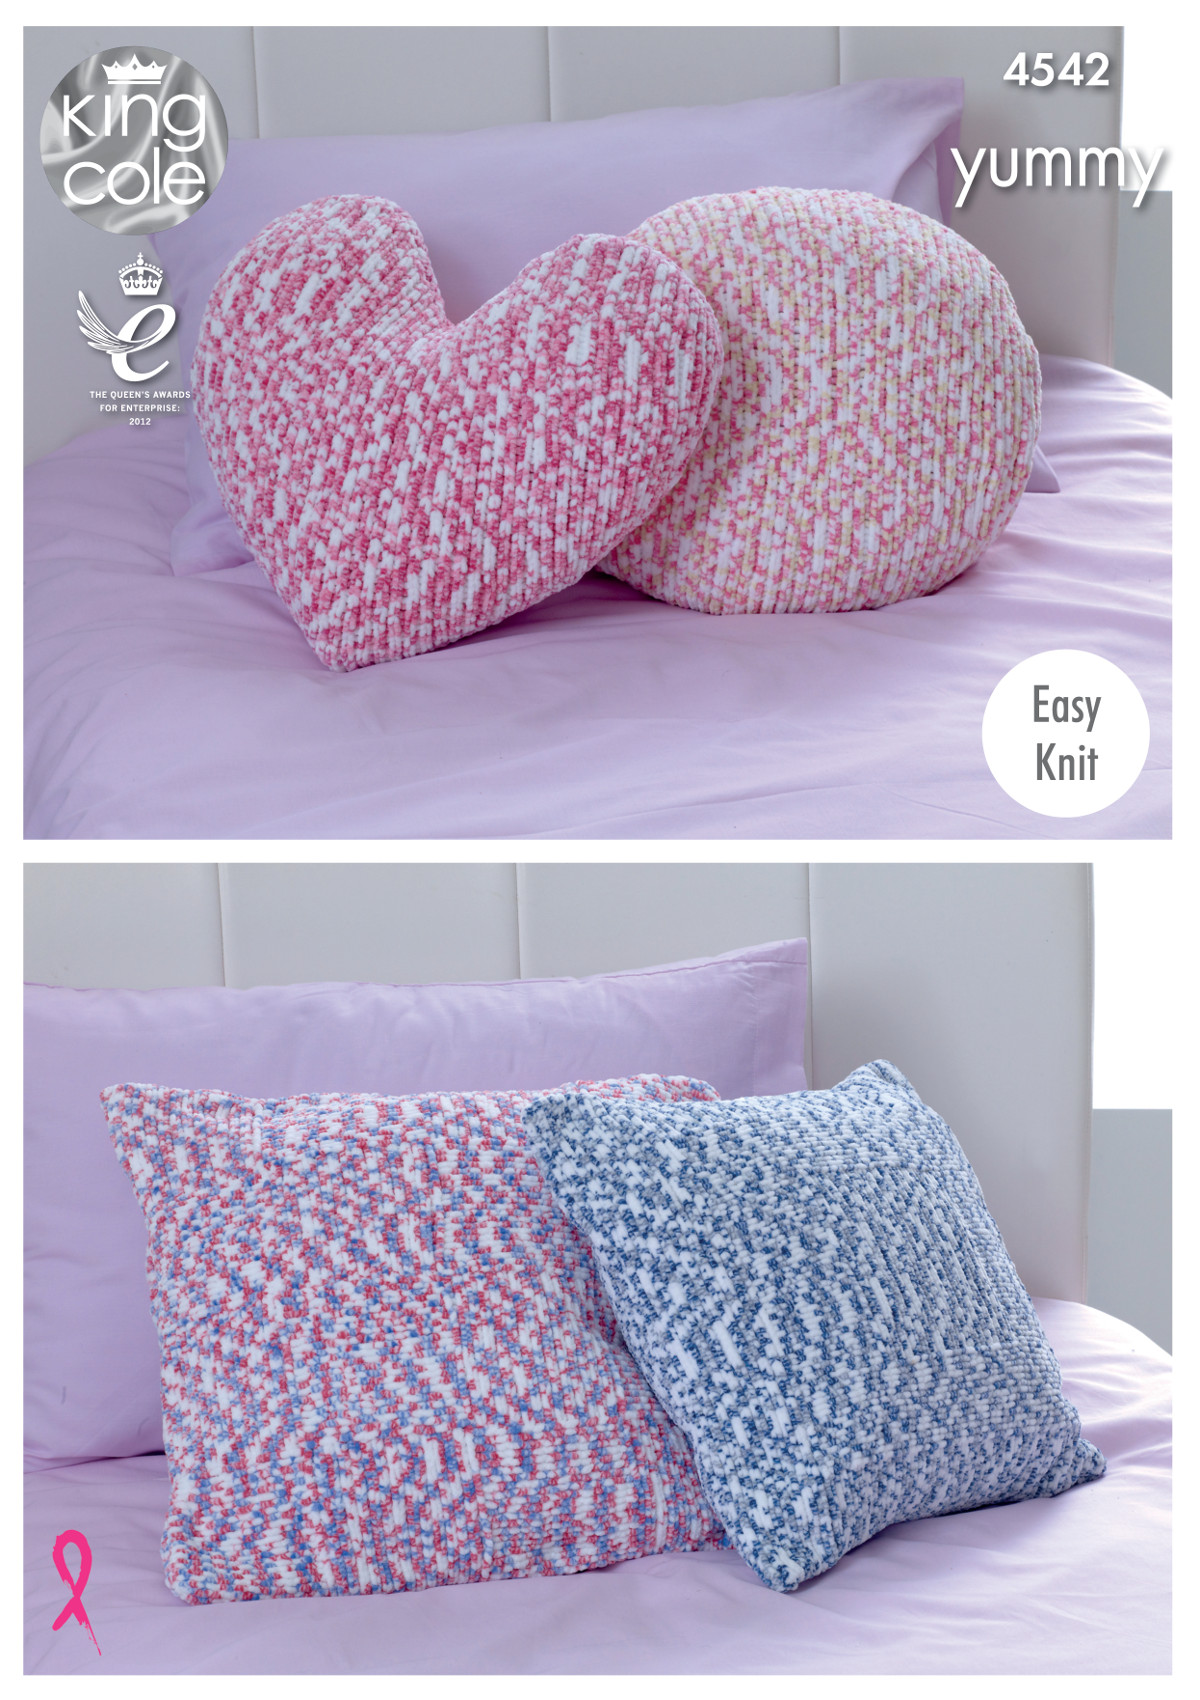 Easy knit cushions knitting pattern round square or heart king easy knit cushions knitting pattern round square or heart king cole yummy 4542 bankloansurffo Gallery